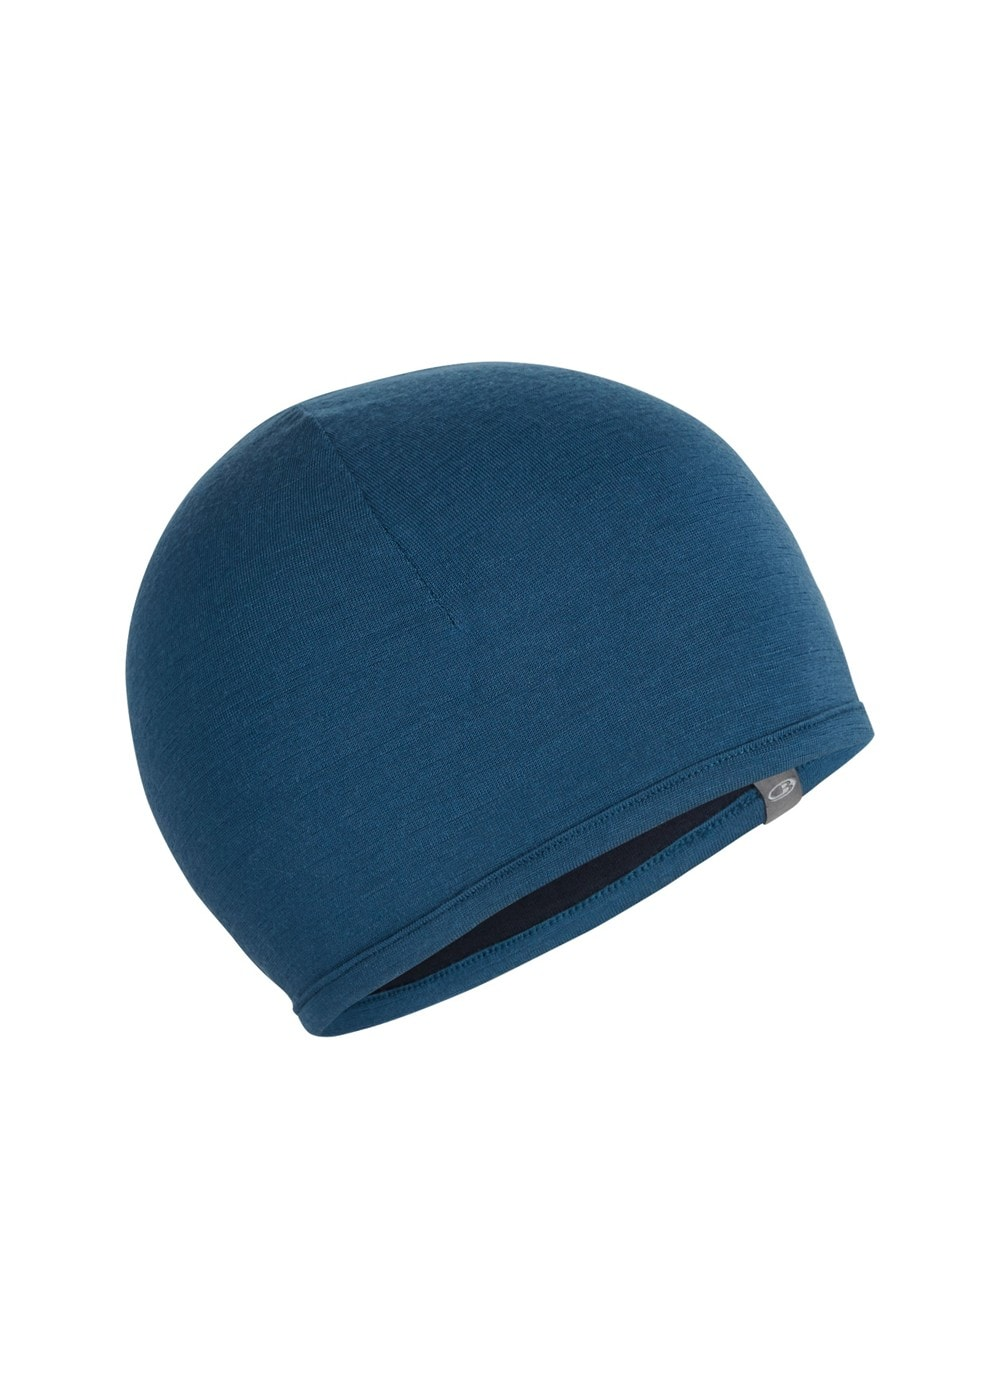 6d960812f87 Icebreaker Reversible Pocket Hat - Ladies from A Hume UK